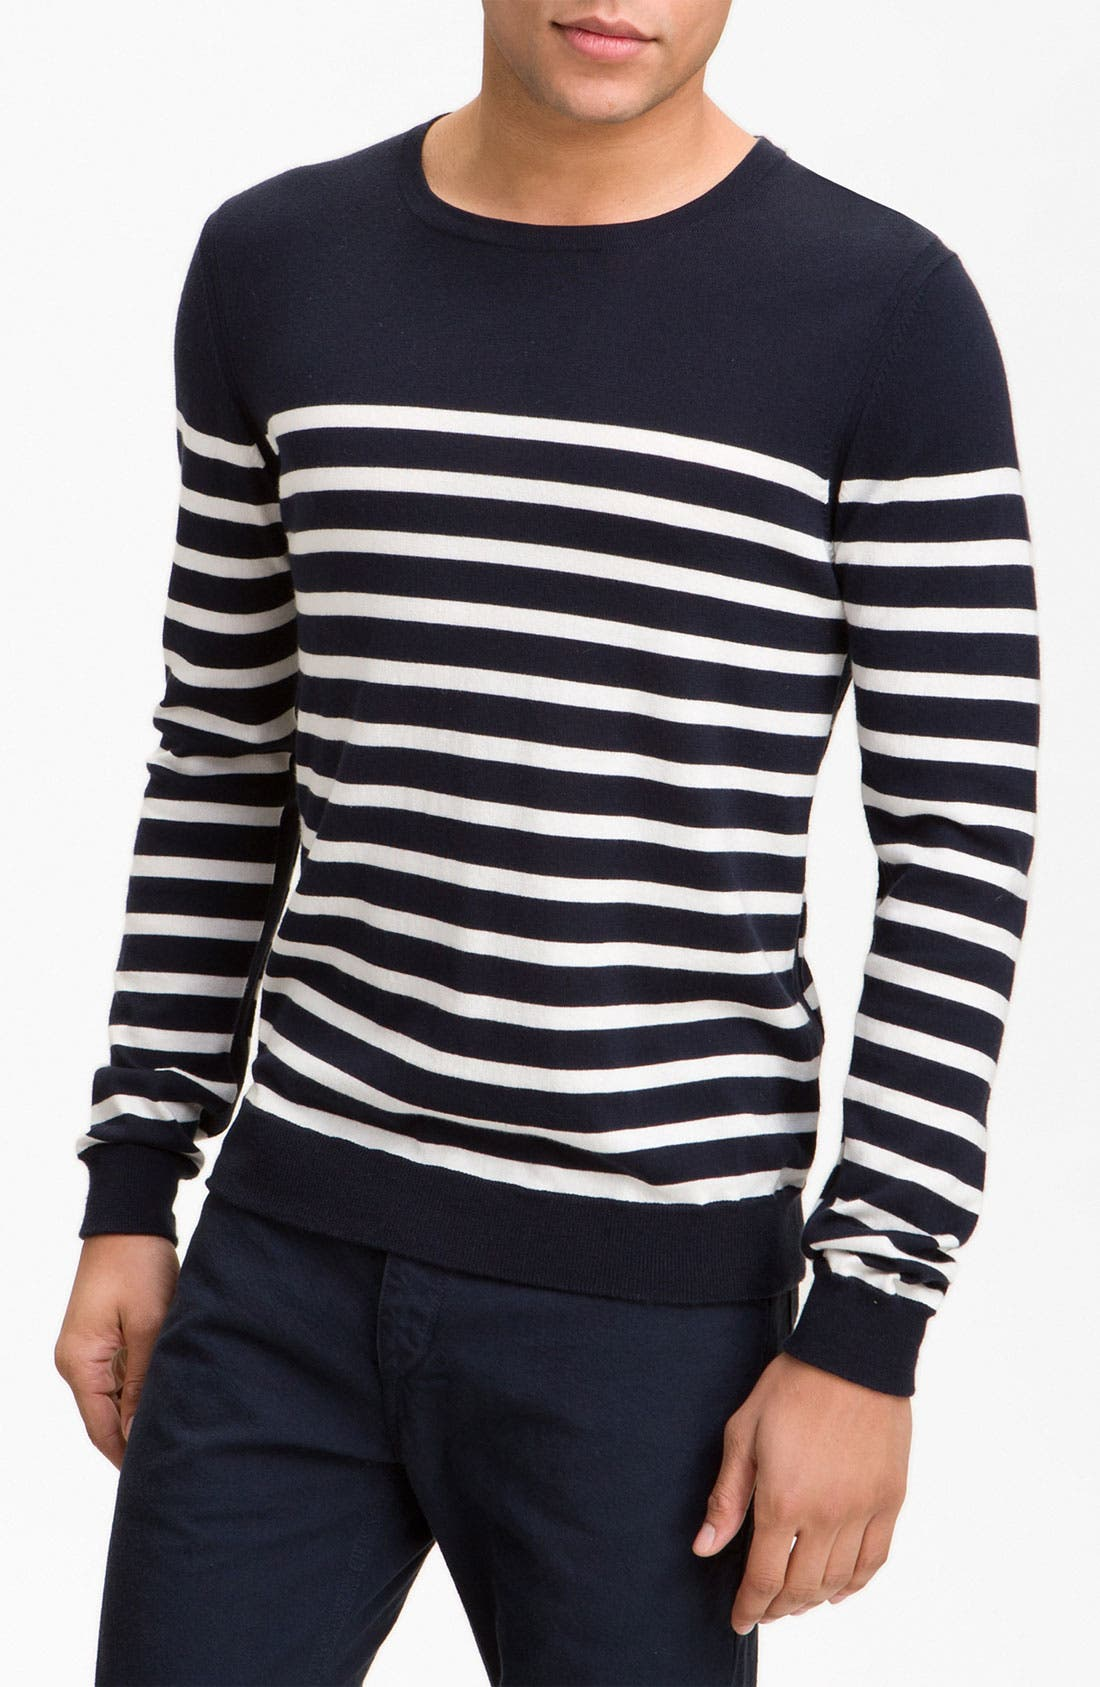 Main Image - rag & bone 'Basque' Crewneck Sweater